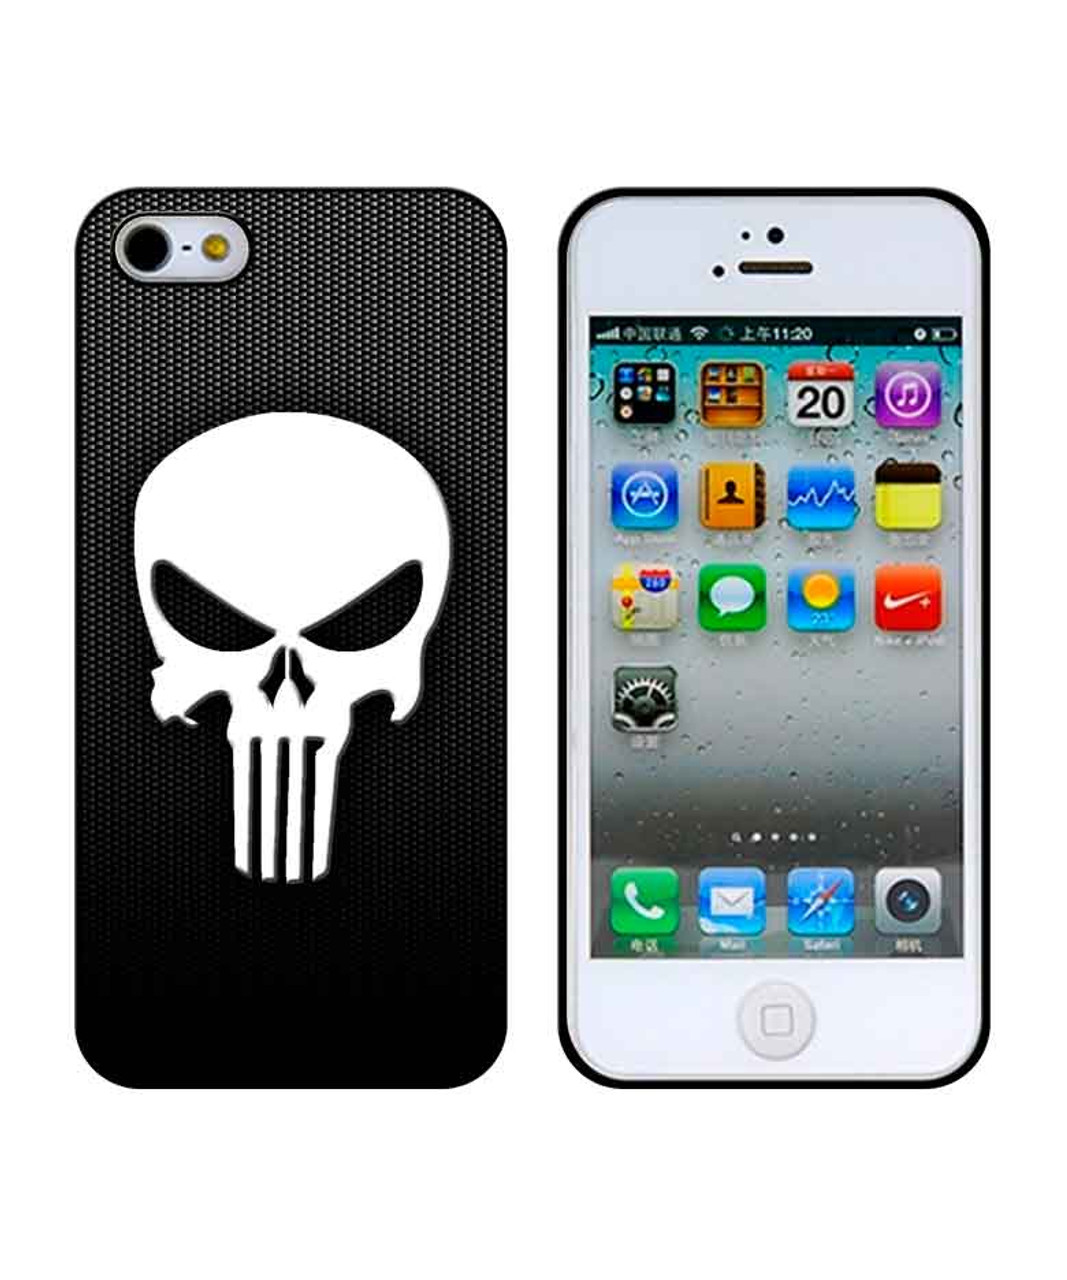 Punisher Iphone S Case